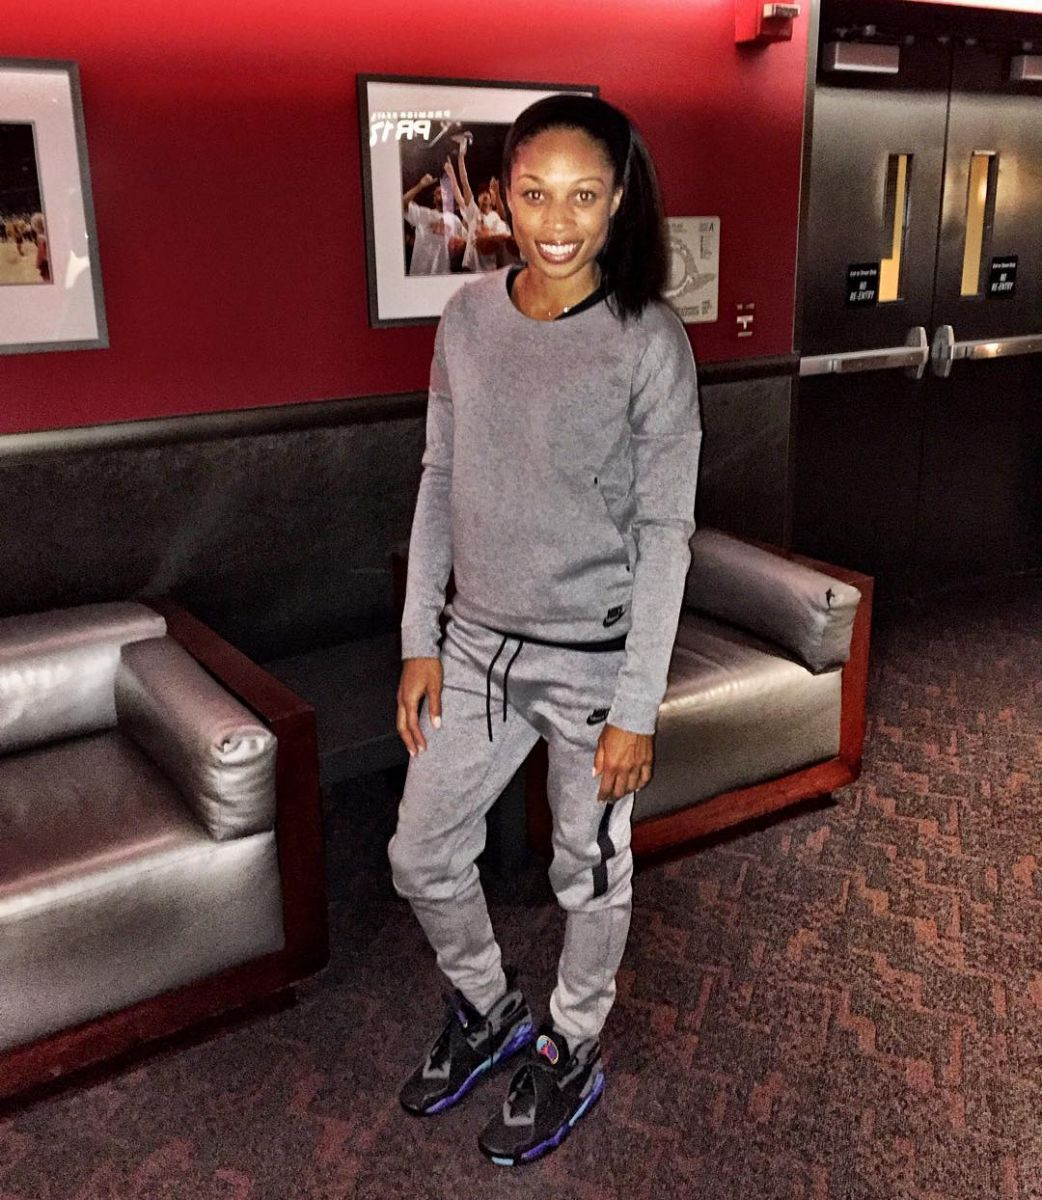 Allyson Felix wearing the 'Aqua' Air Jordan 8